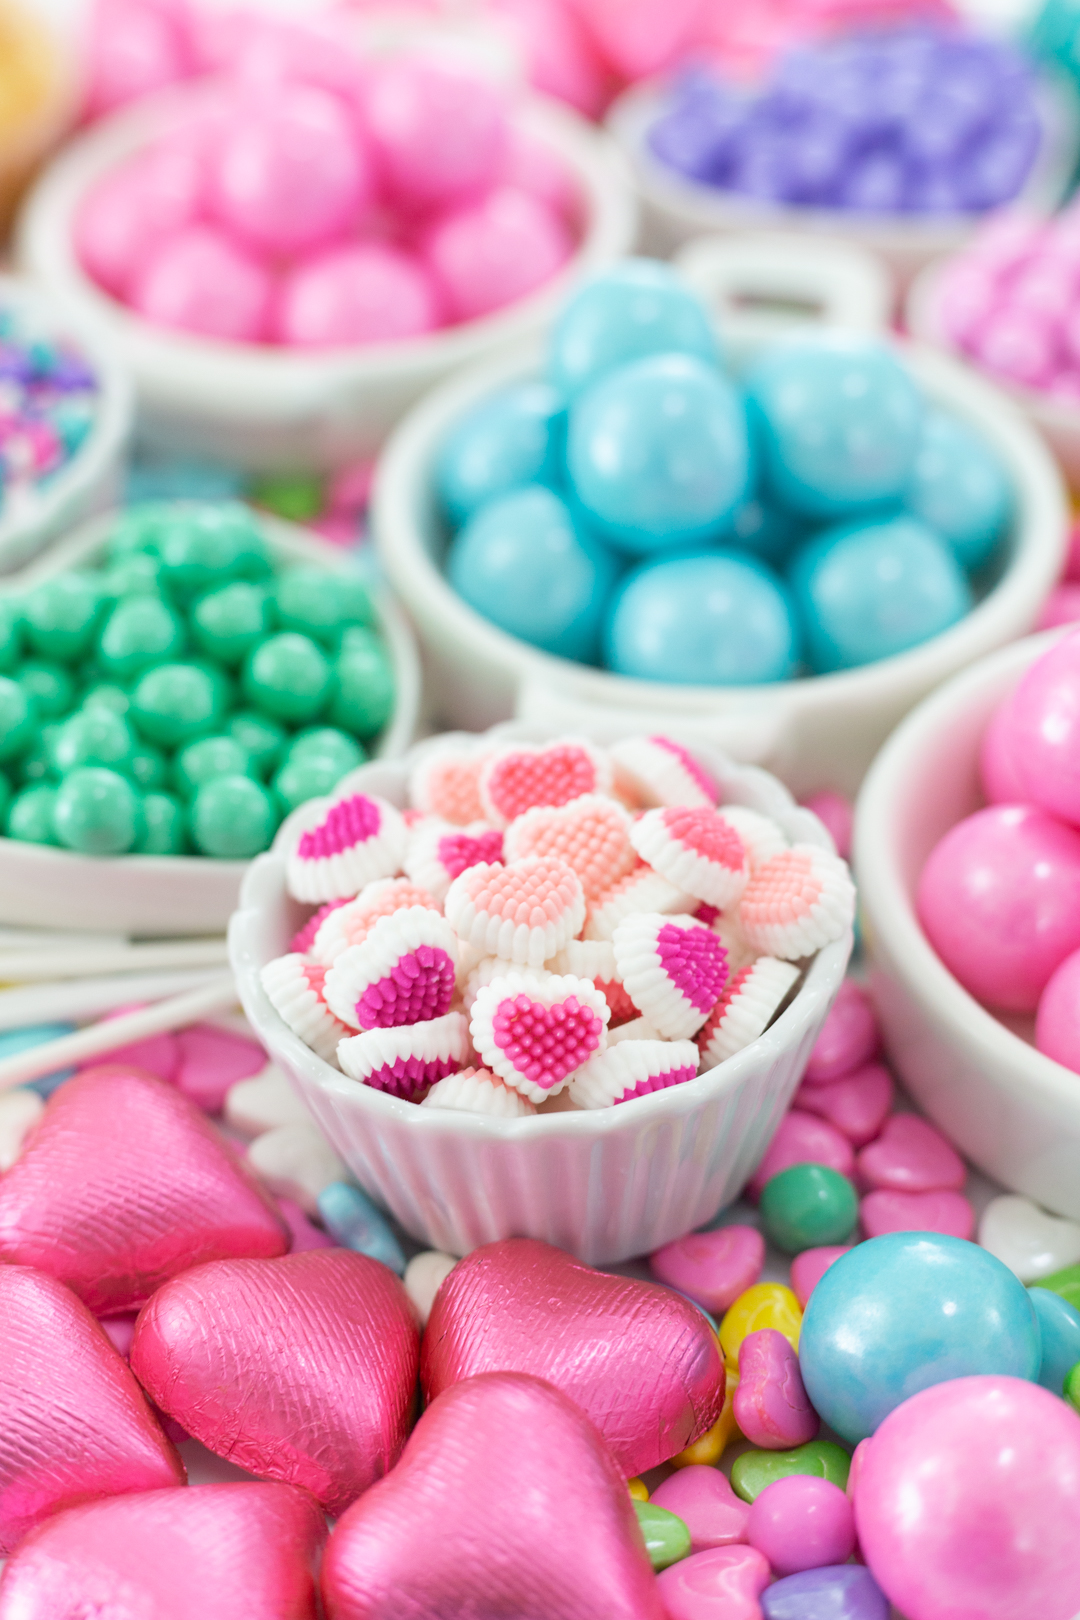 dish filled with pastel valentine's day candies and icing decorations